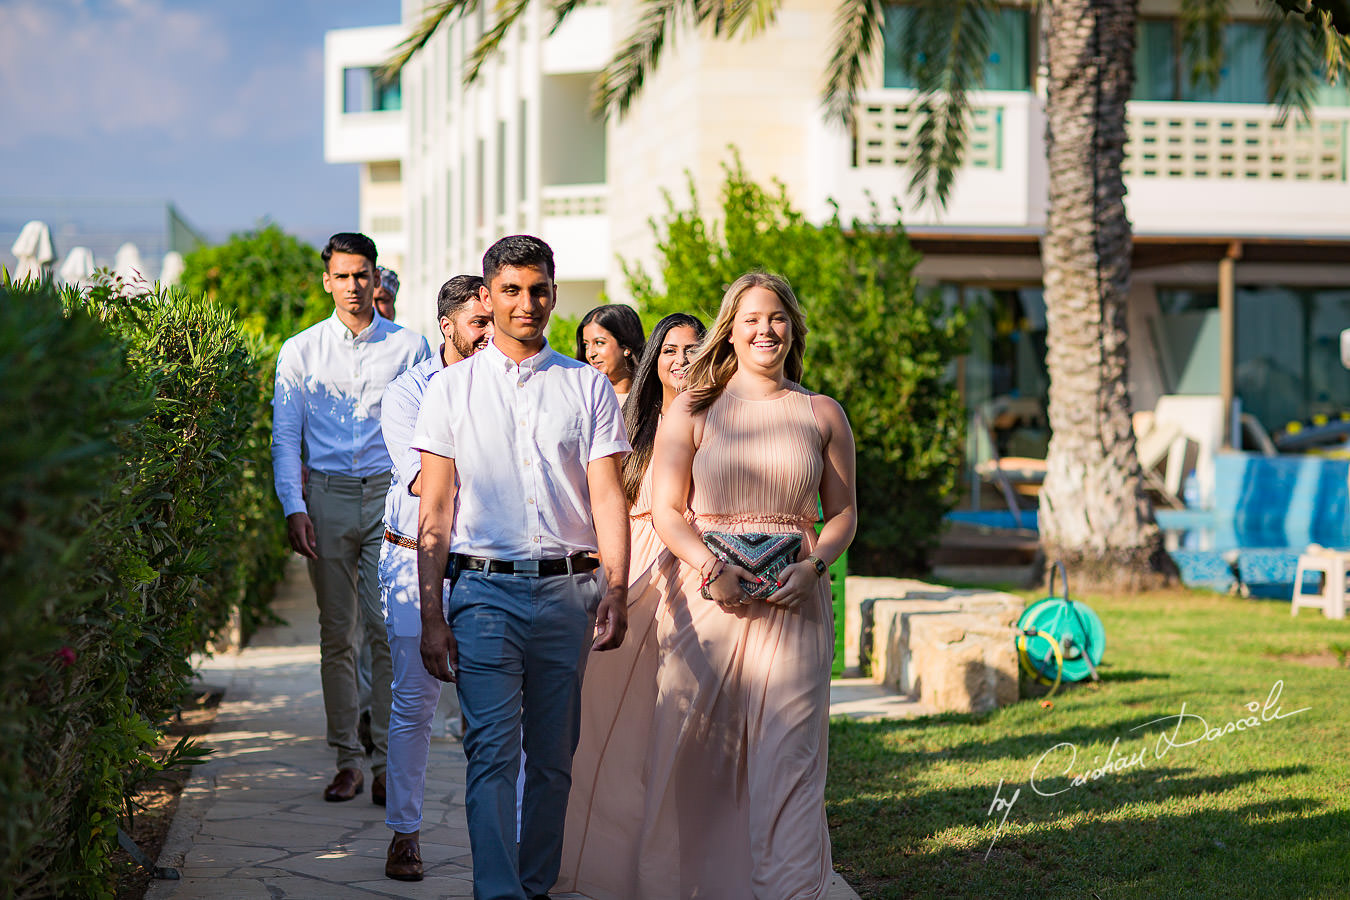 Groomsmen and bridesmaids arriving for the wedding ceremony, moments photographed by Cristian Dascalu at Athena Beach Hotel in Paphos, Cyprus, during a symbolic wedding.